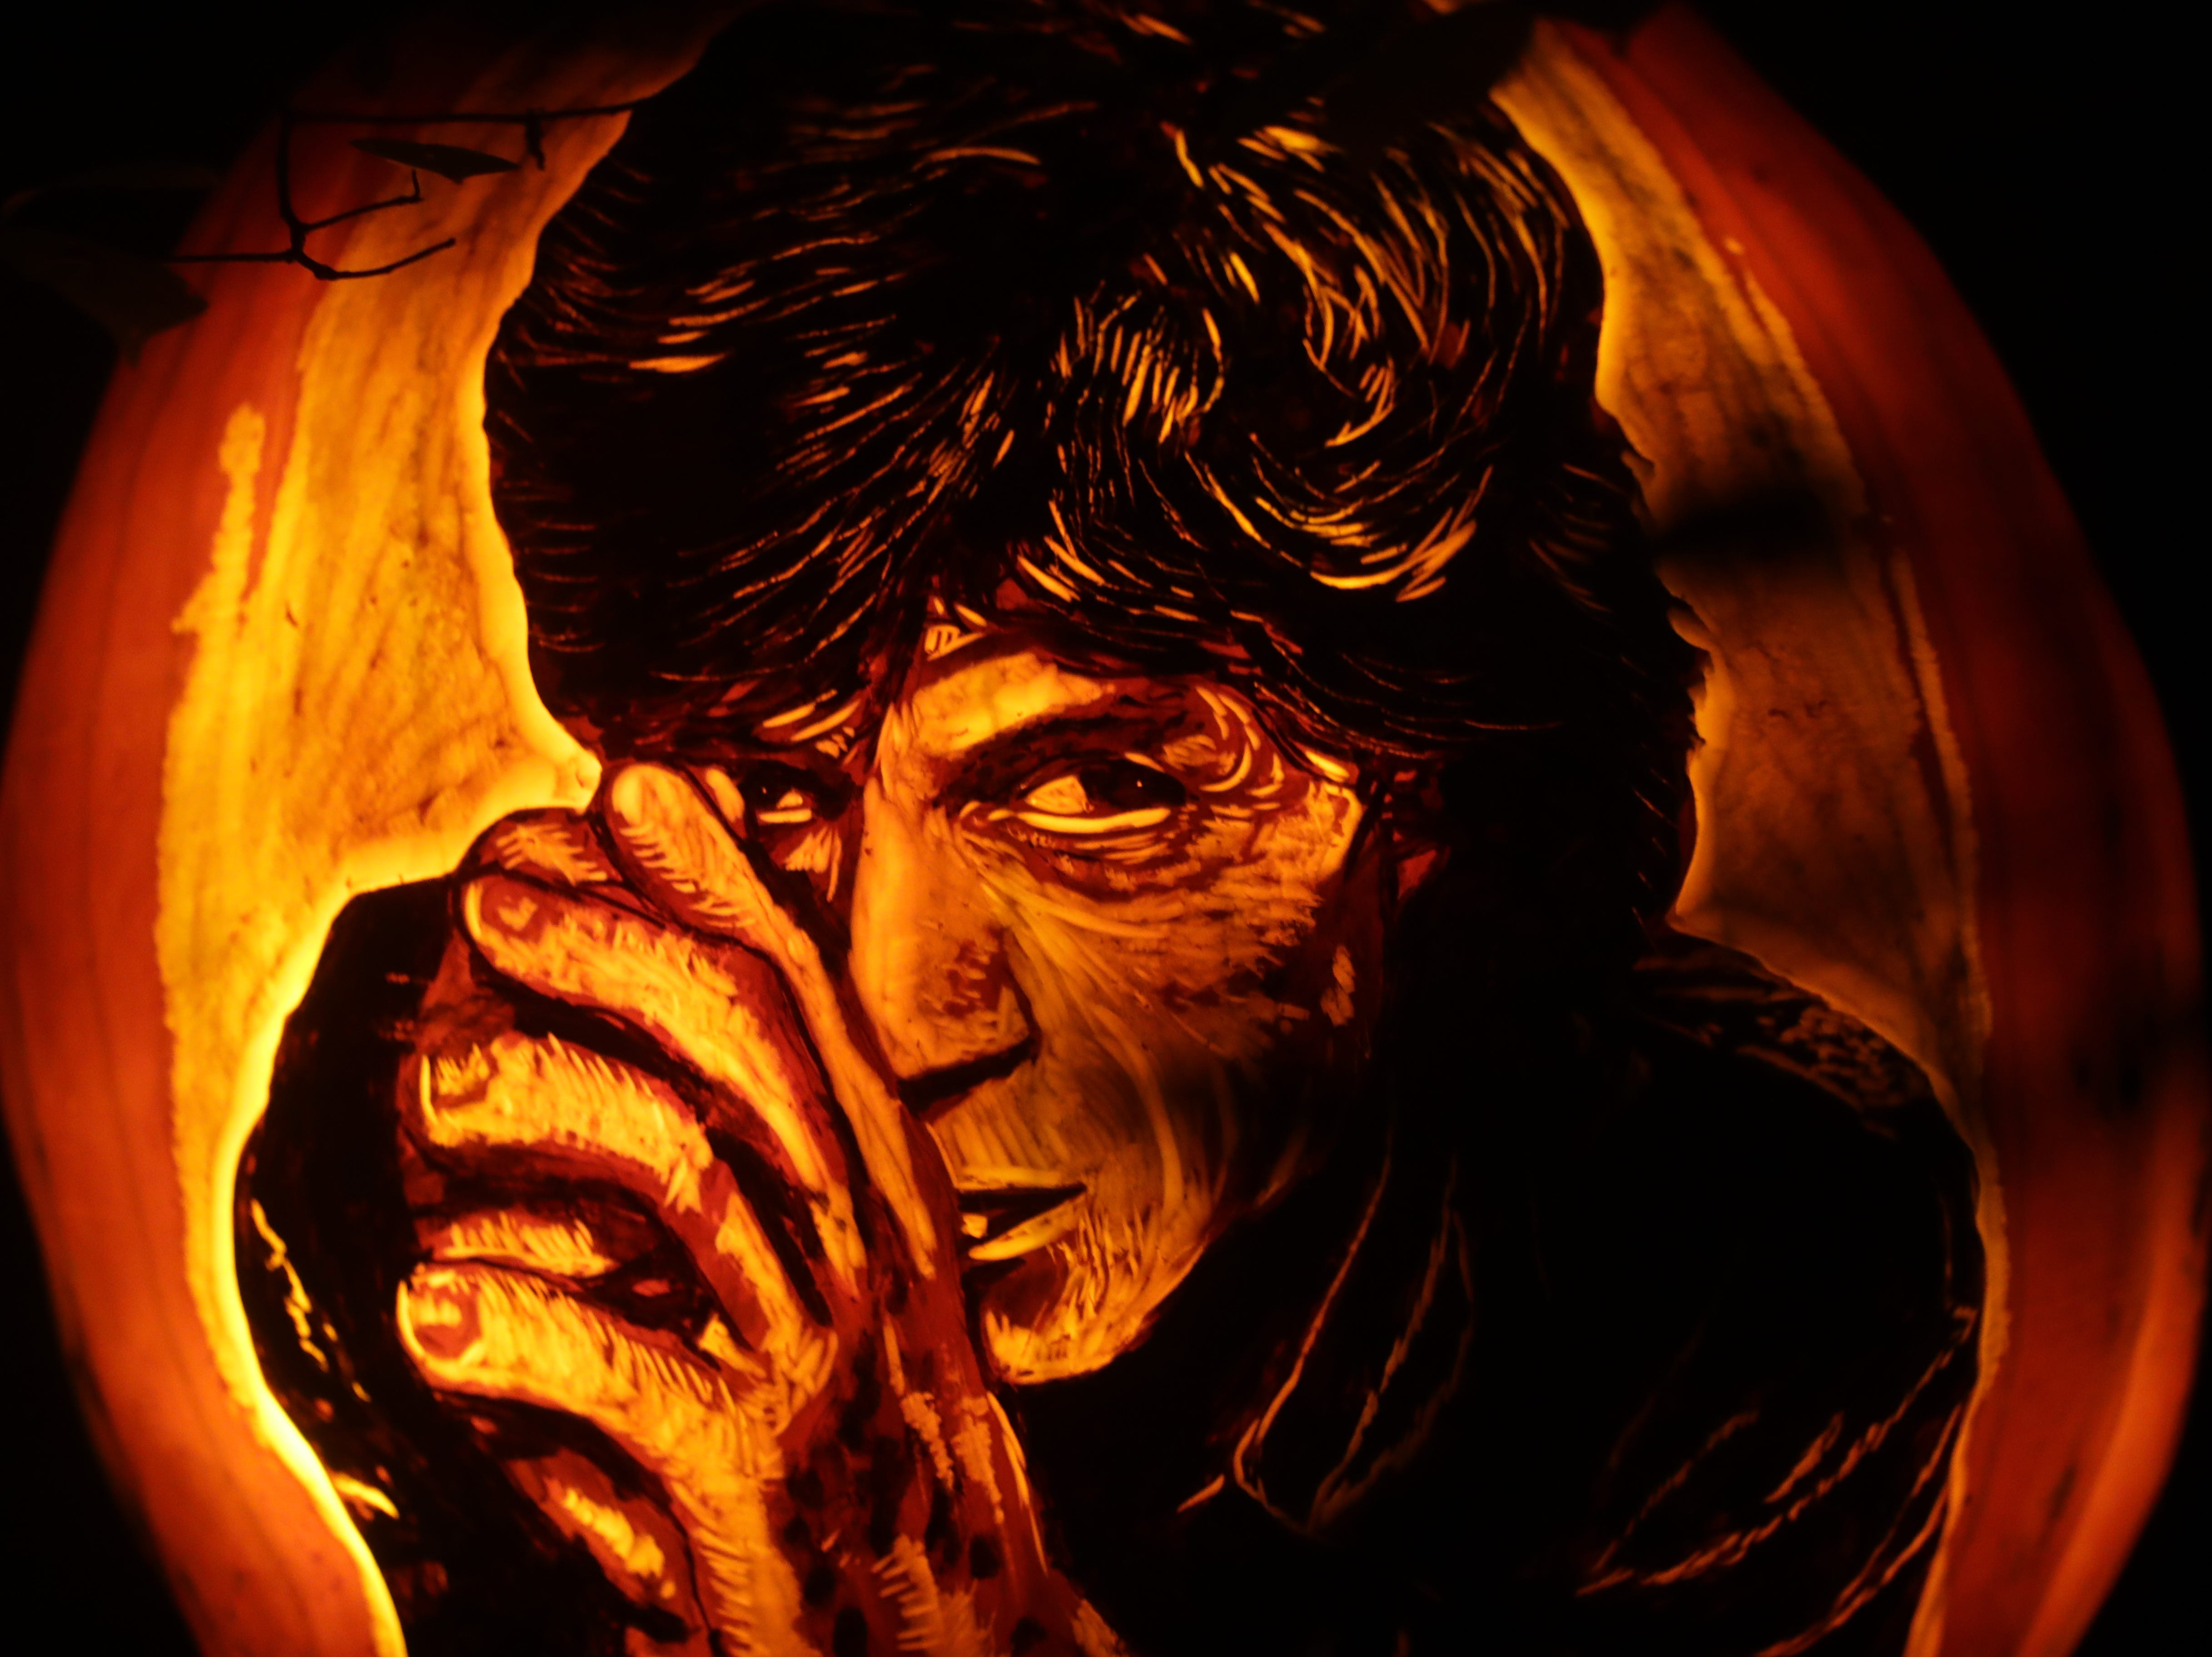 Mick Jagger appears on a pumpkin at this year's Jack O' Lantern Spectacular. Oct. 9, 2018